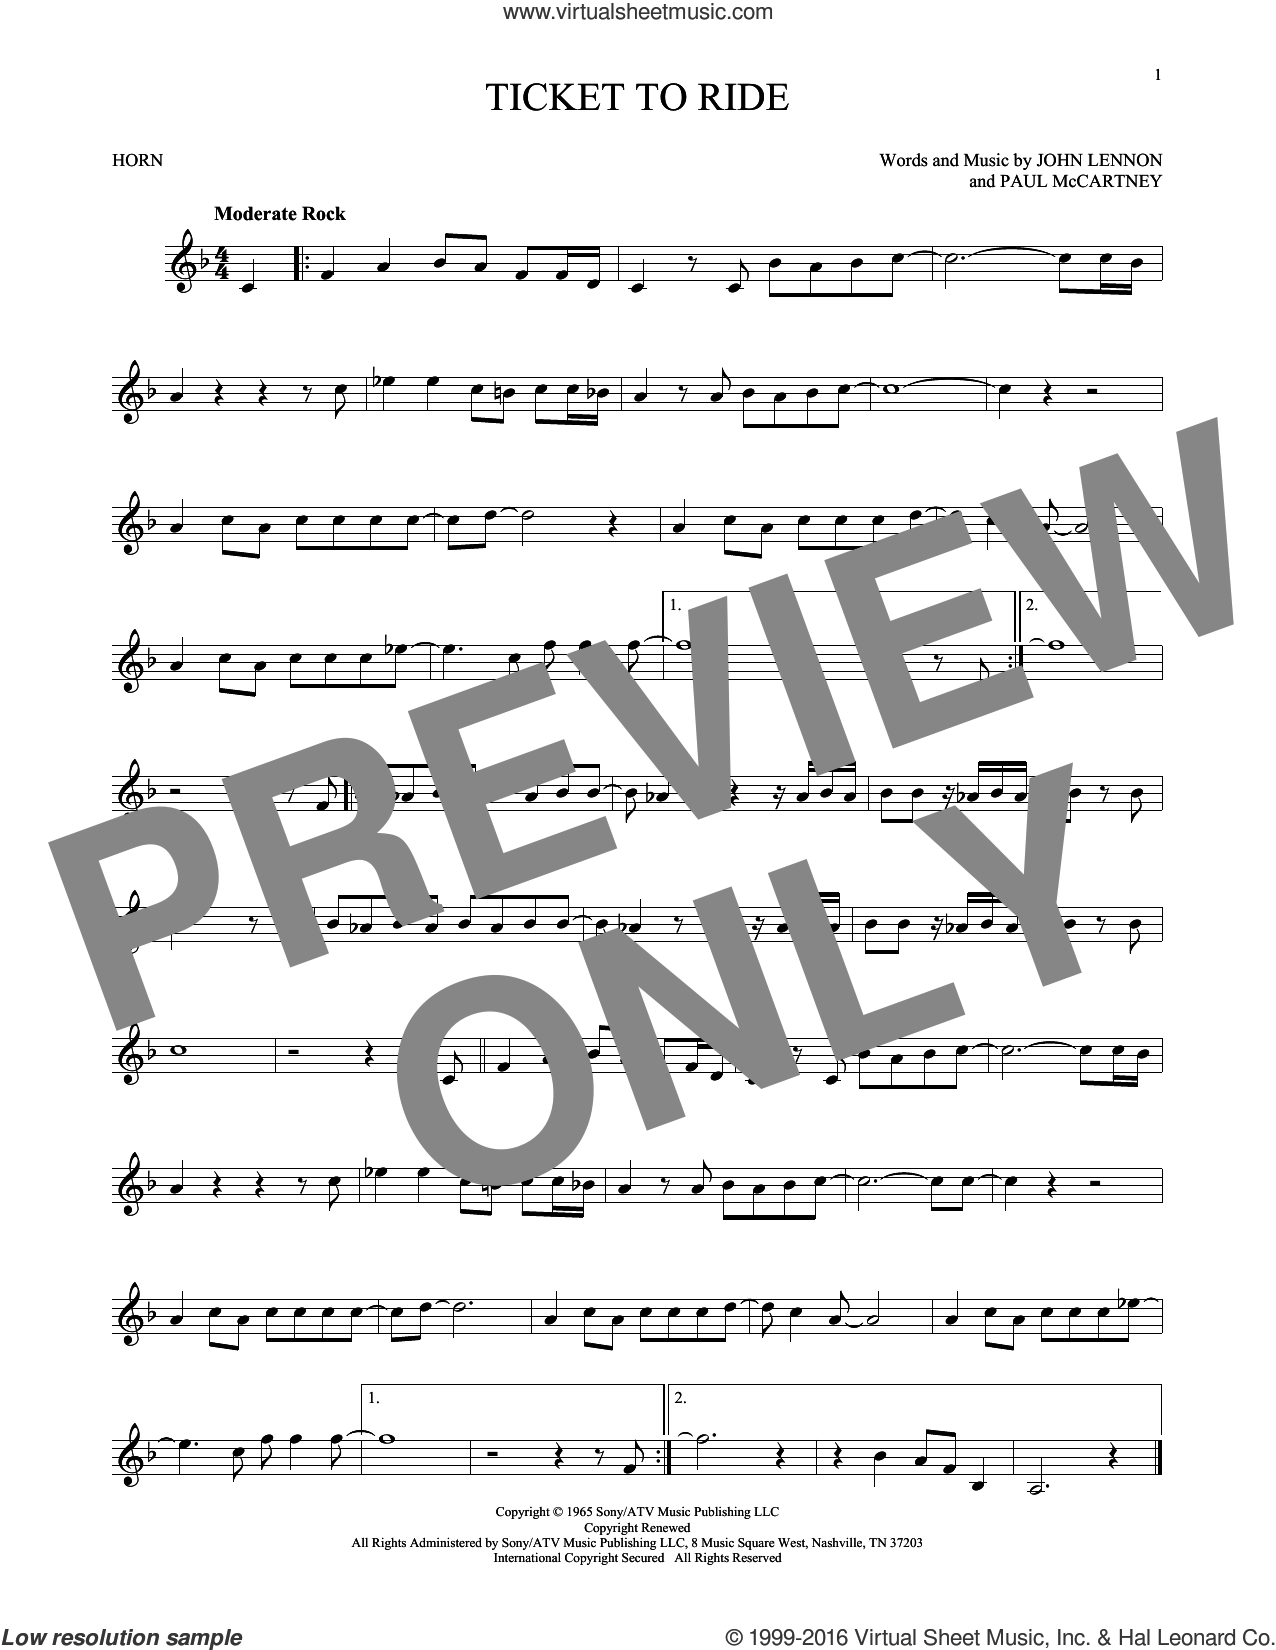 Ticket To Ride sheet music for horn solo by The Beatles, John Lennon and Paul McCartney, intermediate skill level